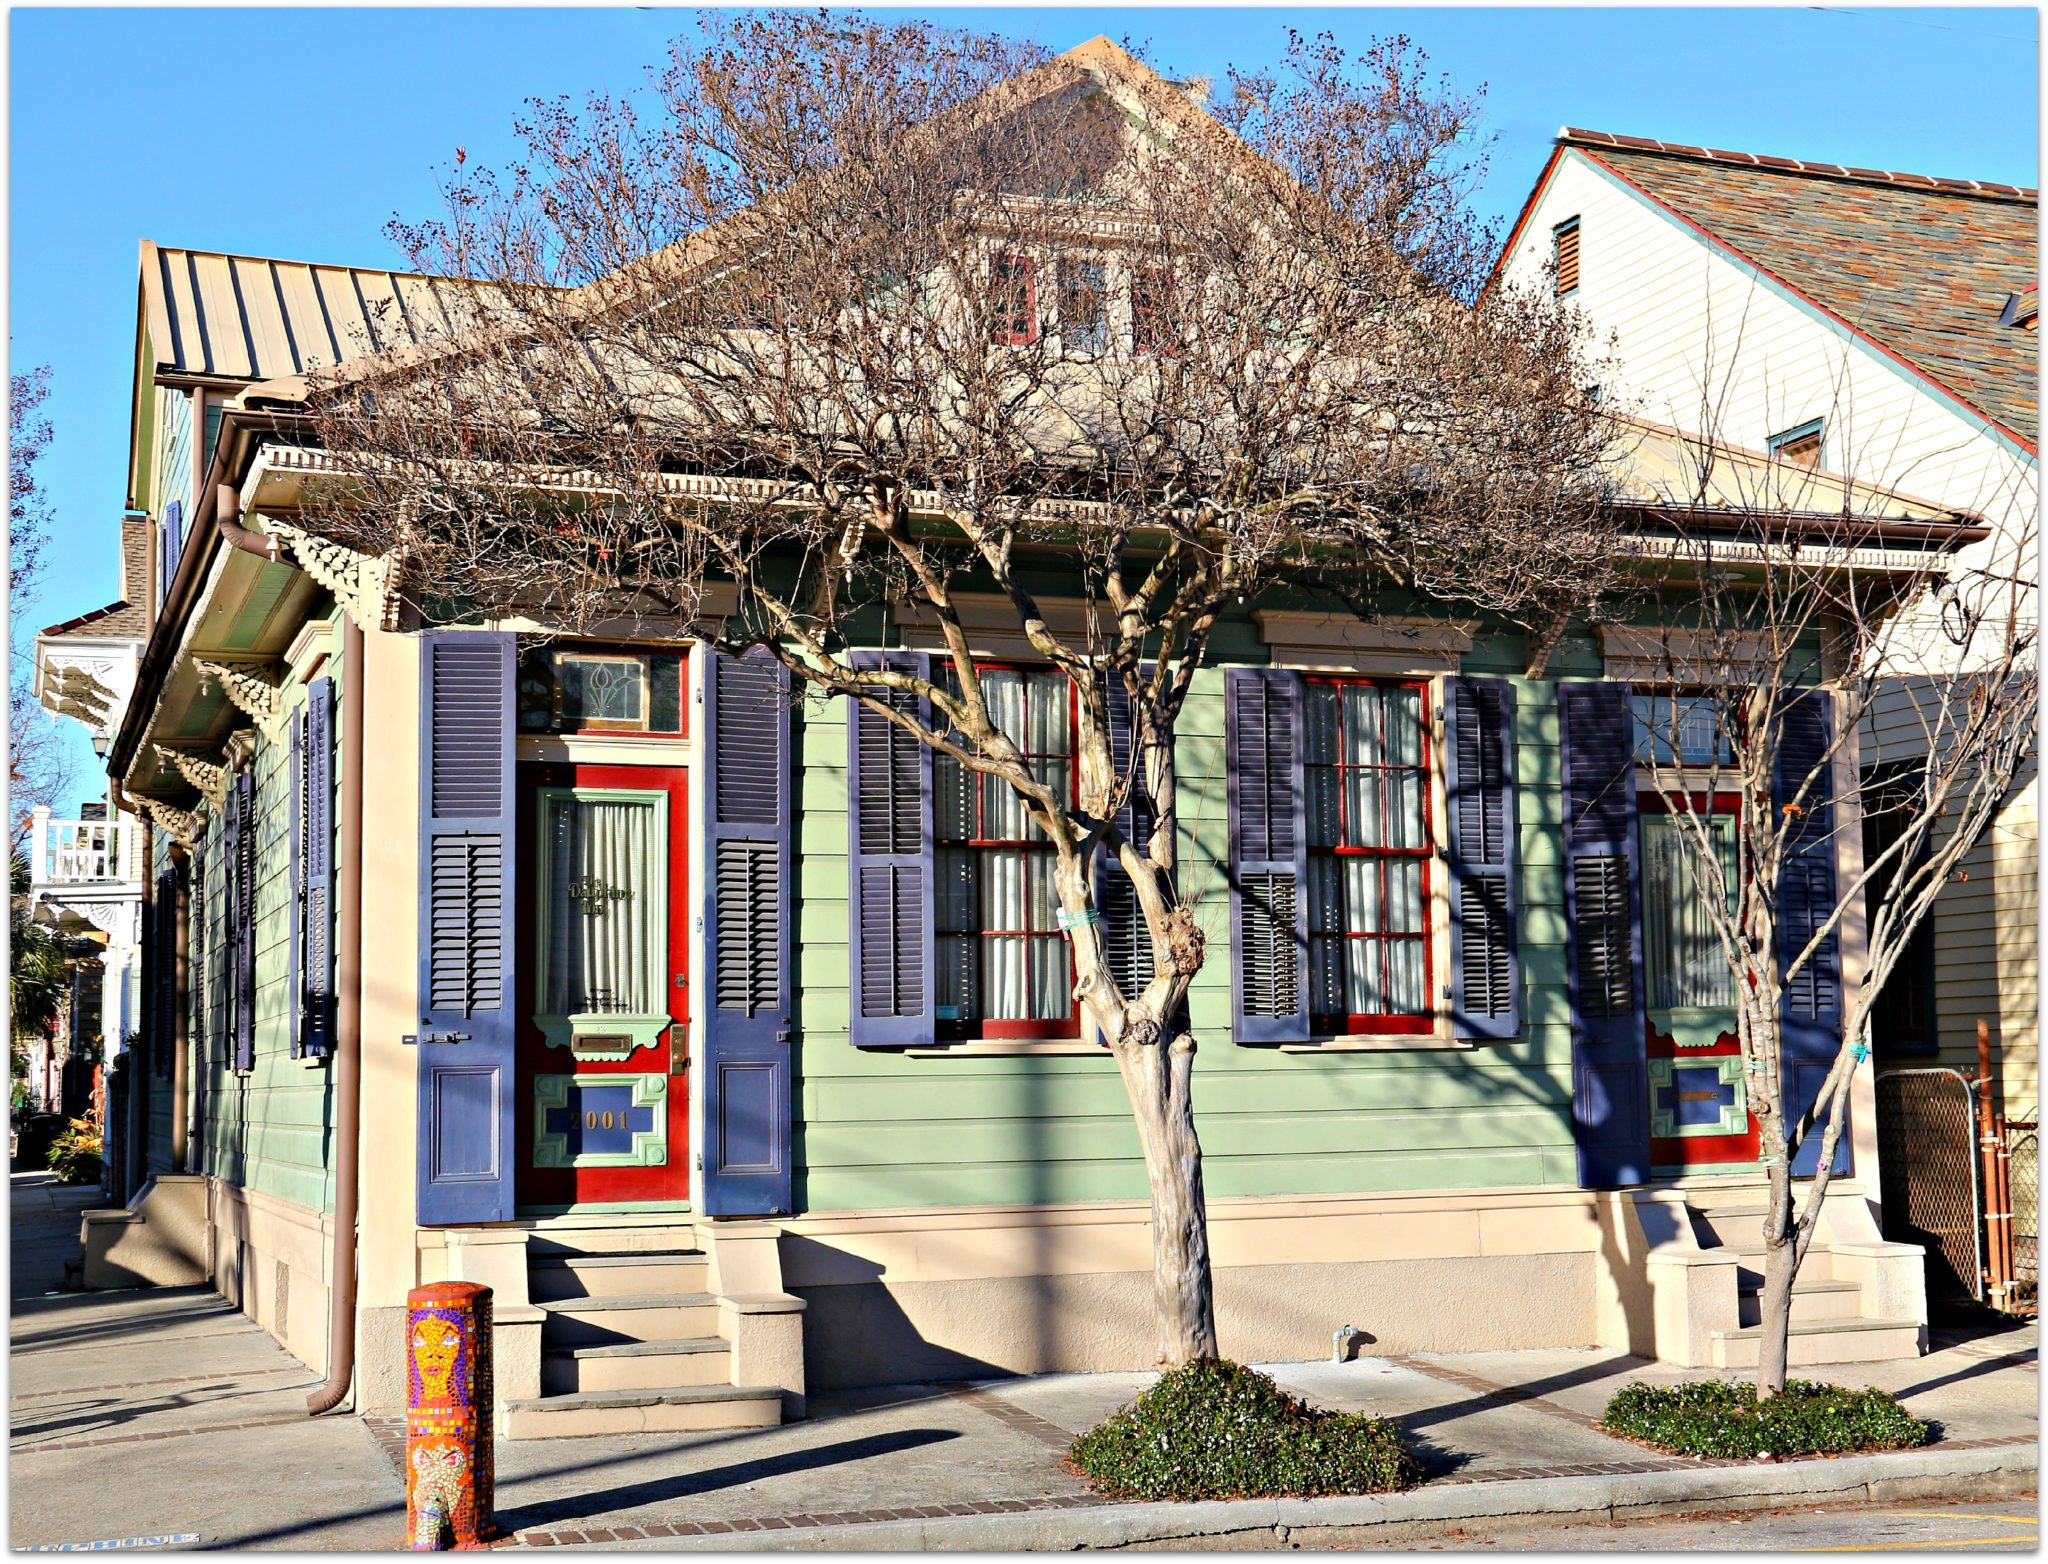 Colorful Marigny Homes in New Orleans